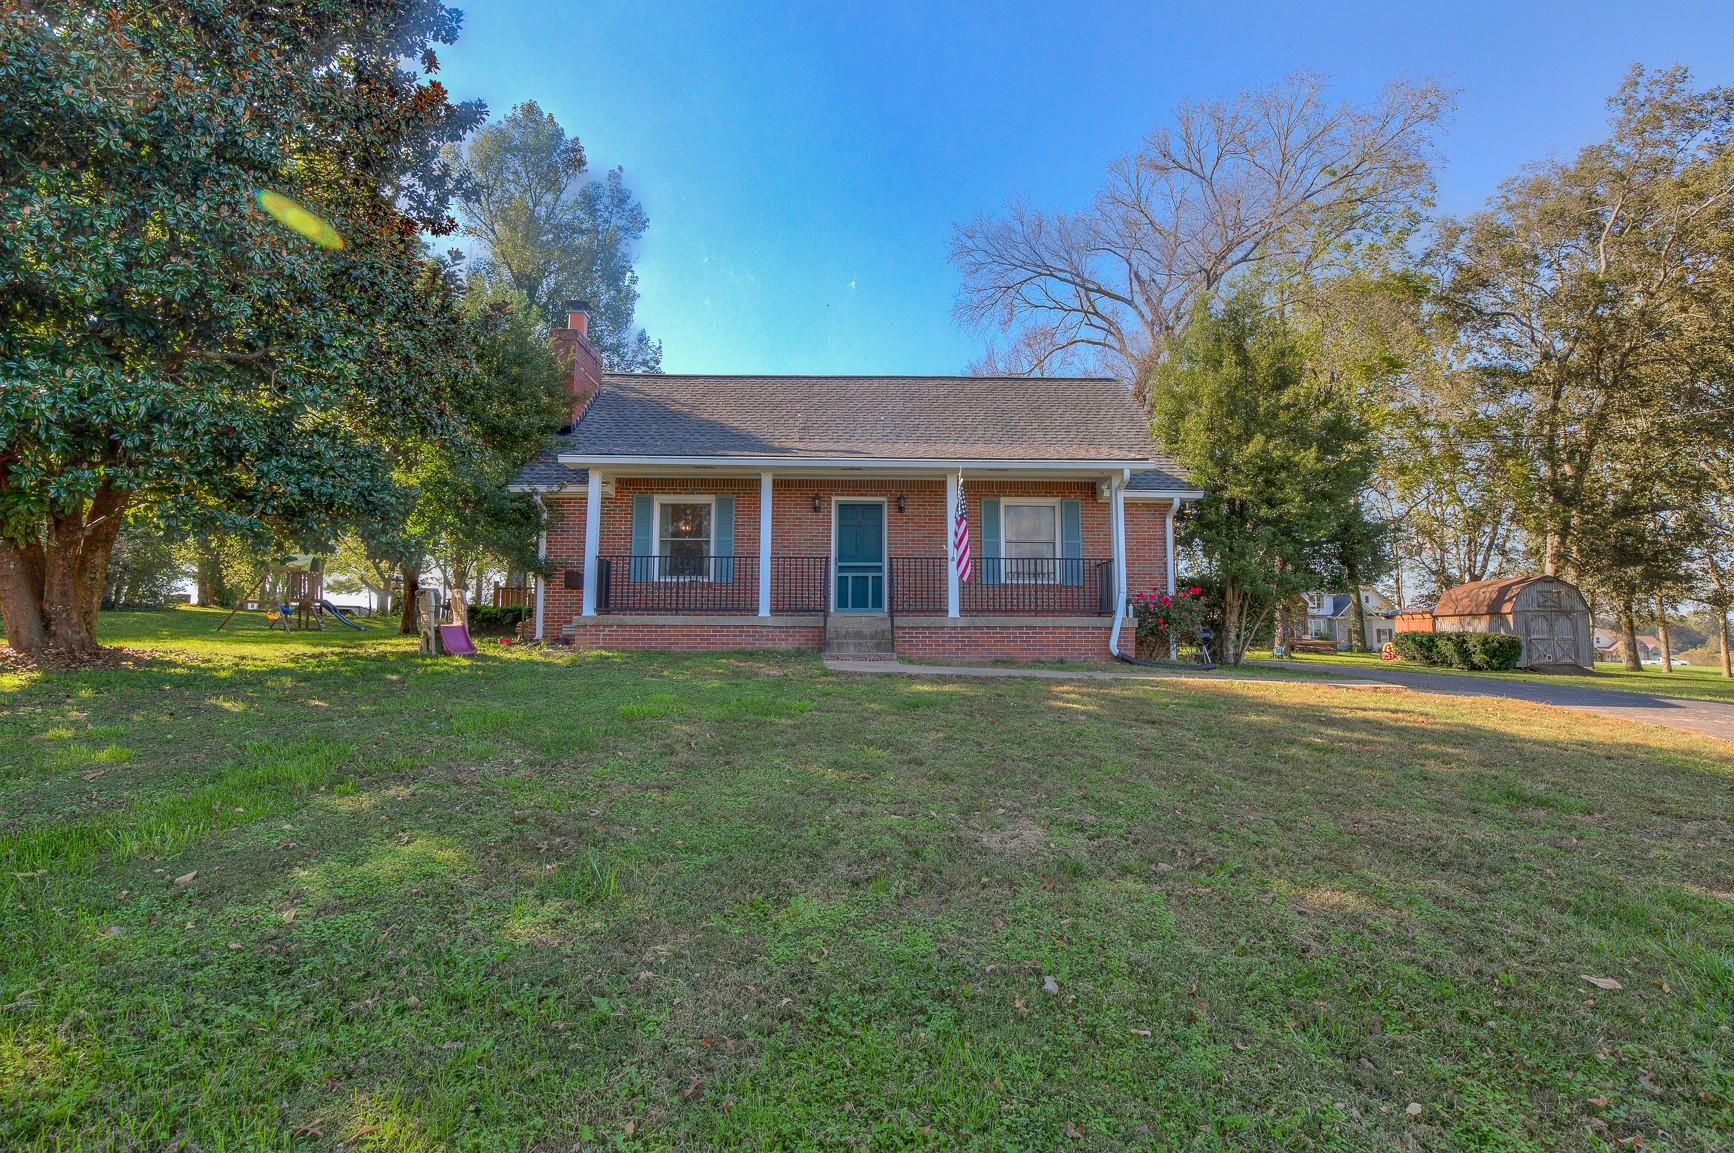 3-Bedroom House In Gallatin